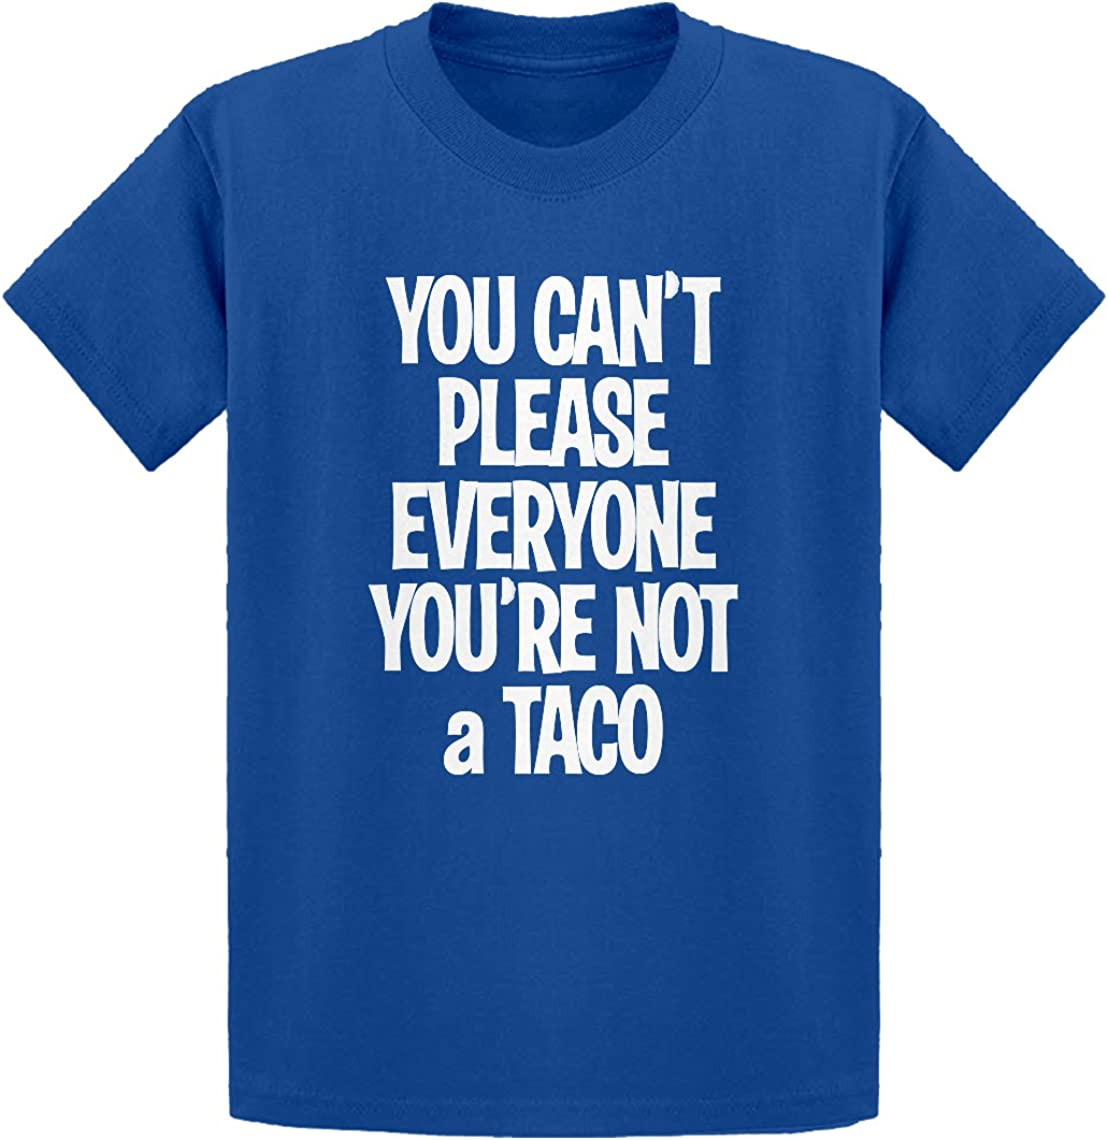 Youre not a Taco Kids T-Shirt